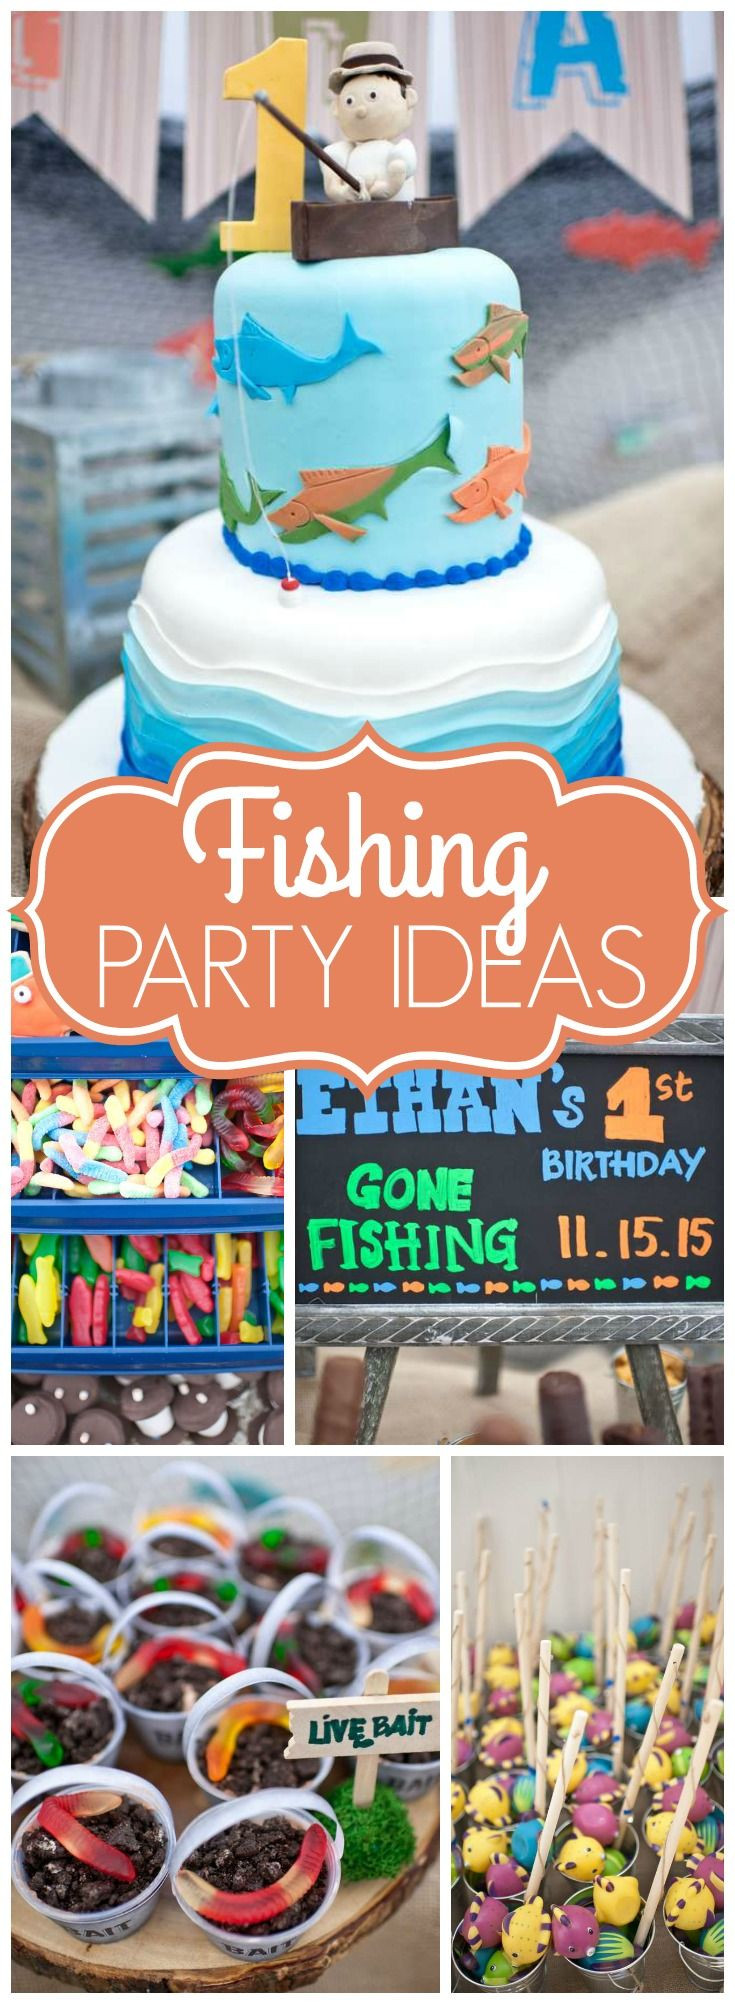 """Best ideas about First Birthday Party Themes Boys . Save or Pin Gone Fishing Birthday """"Ethan s Gone Fishing 1st Birthday Now."""